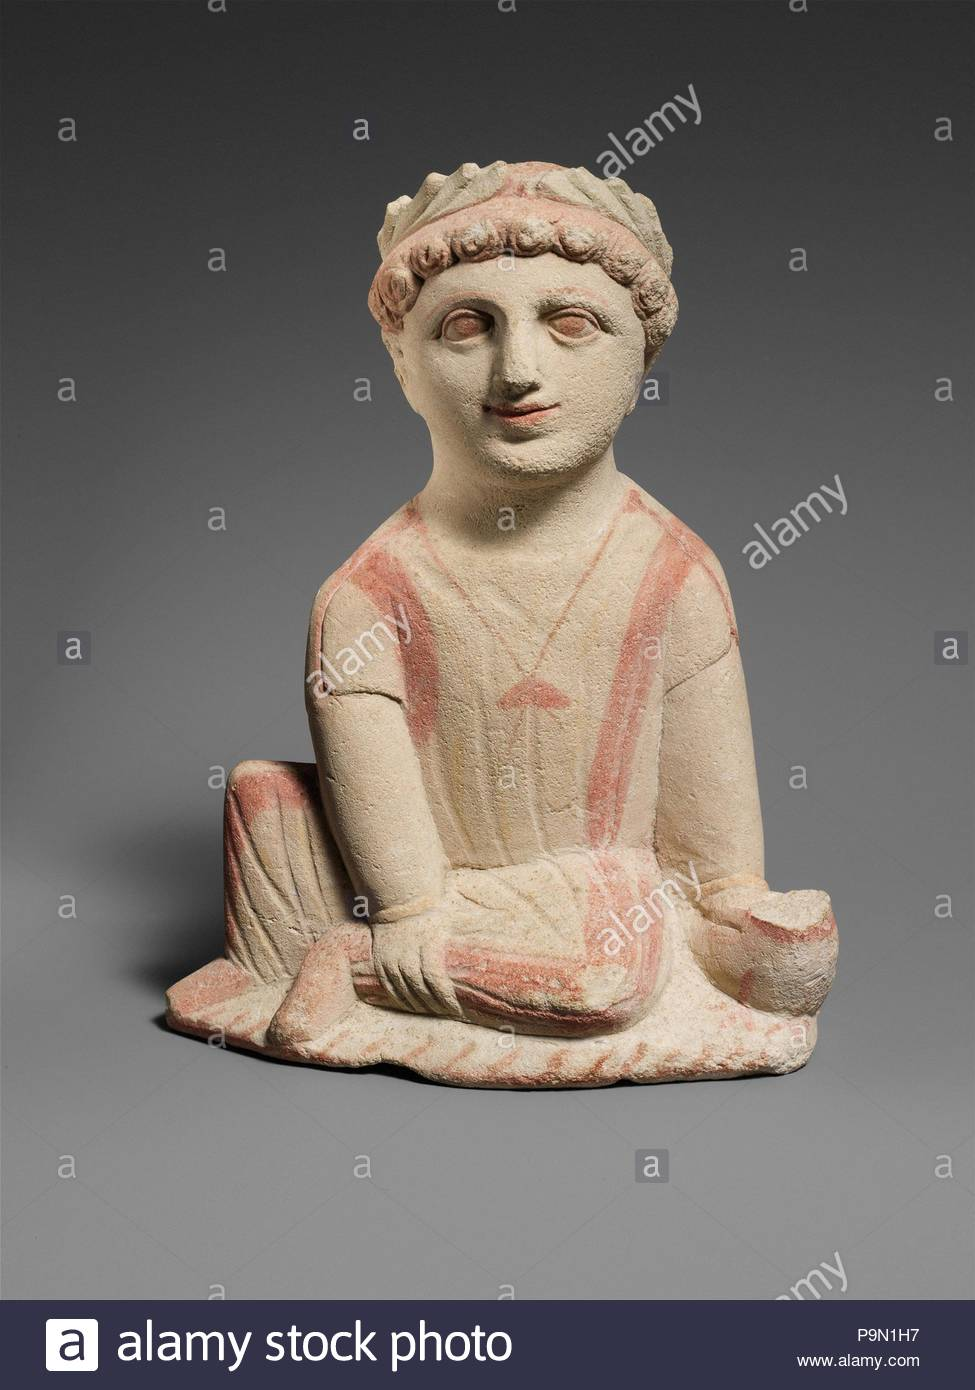 Limestone statuette of a temple boy, Classical, ca. 350–300 B.C., Cypriot, Limestone, Overall: 9 1/4 x 7 x 2 1/2 in. (23.5 x 17.8 x 6.4 cm), Stone Sculpture, He sits on an elliptical plinth. His left foot is also stretched downwards and holds a bird, whose head is missing. He wears a short sleeved chiton that reaches his ankles. Thick bands are painted on his sides and legs. - Stock Image